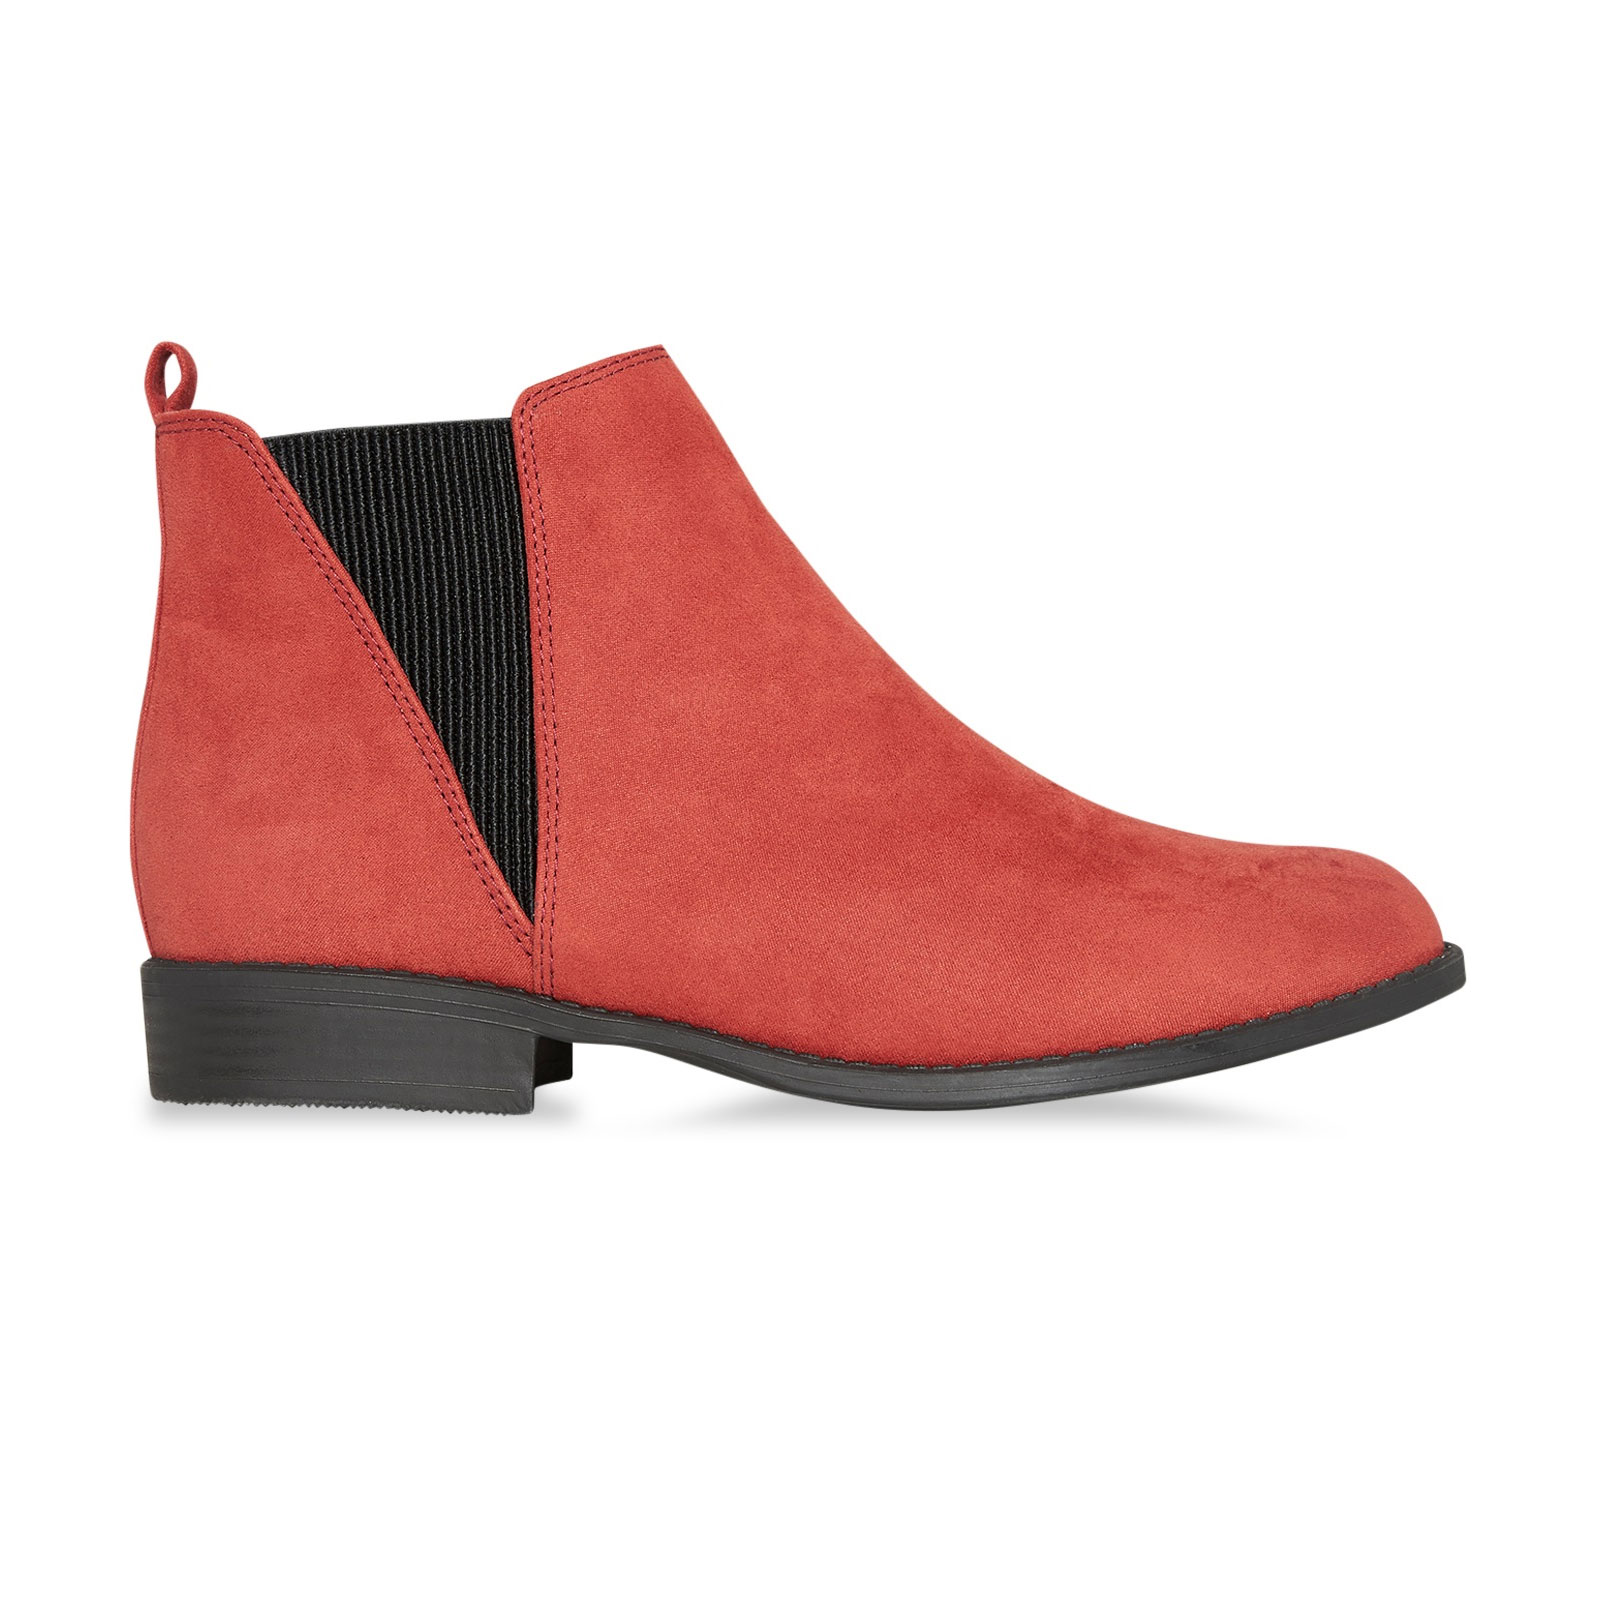 Ladies-Womens-Chelsea-Dealer-Boots-Suede-Ankle-Slip-On-Low-Heel-Shoes-Size-3-8 thumbnail 7